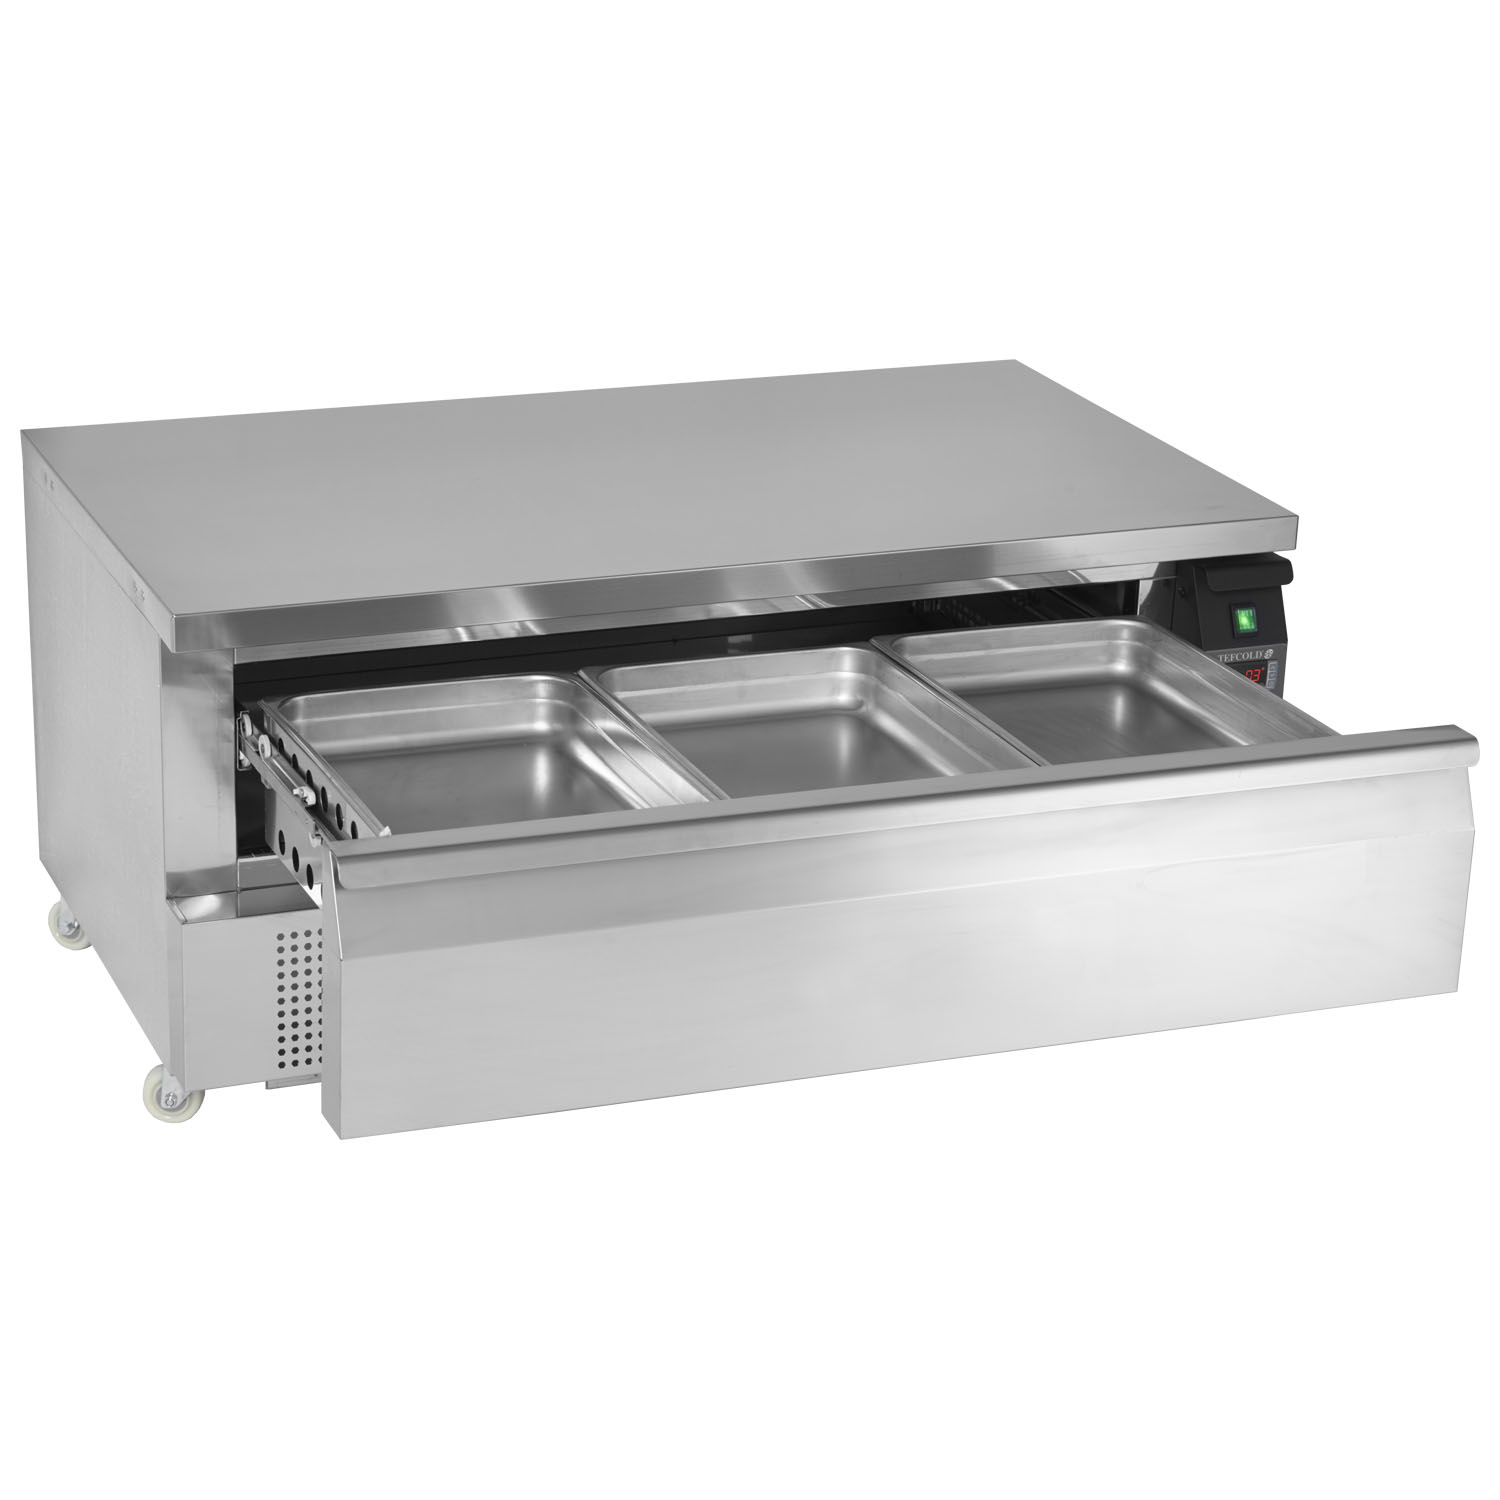 Tefcold Uni-Drawer UD1-3 Dual Temperature Gastronorm Stainless Steel Counter open